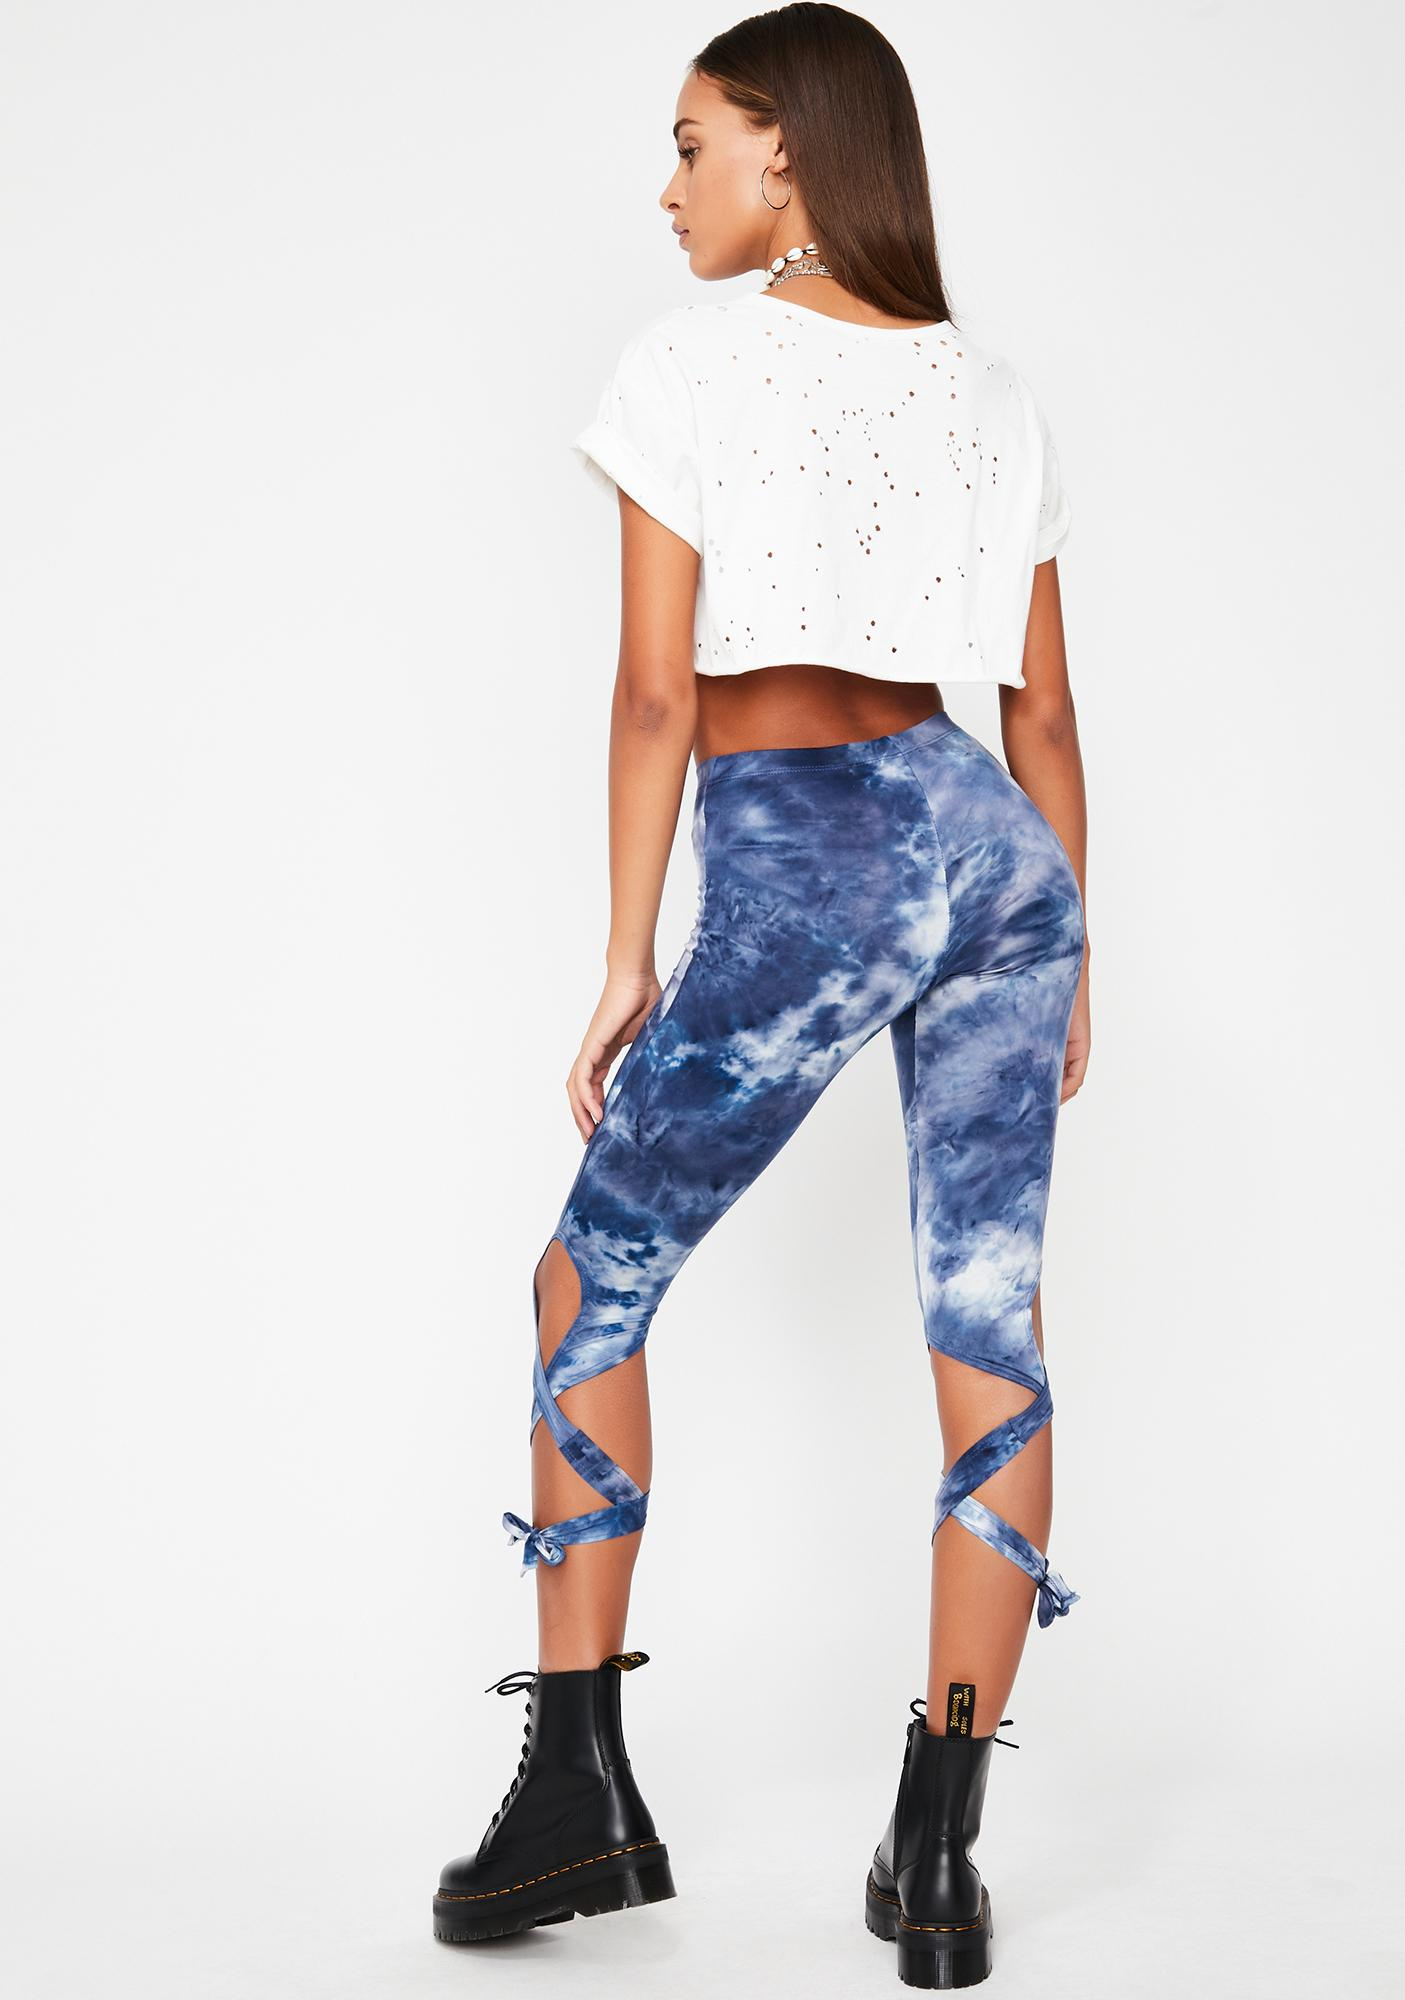 Crystalized Vibes Ballet Leggings